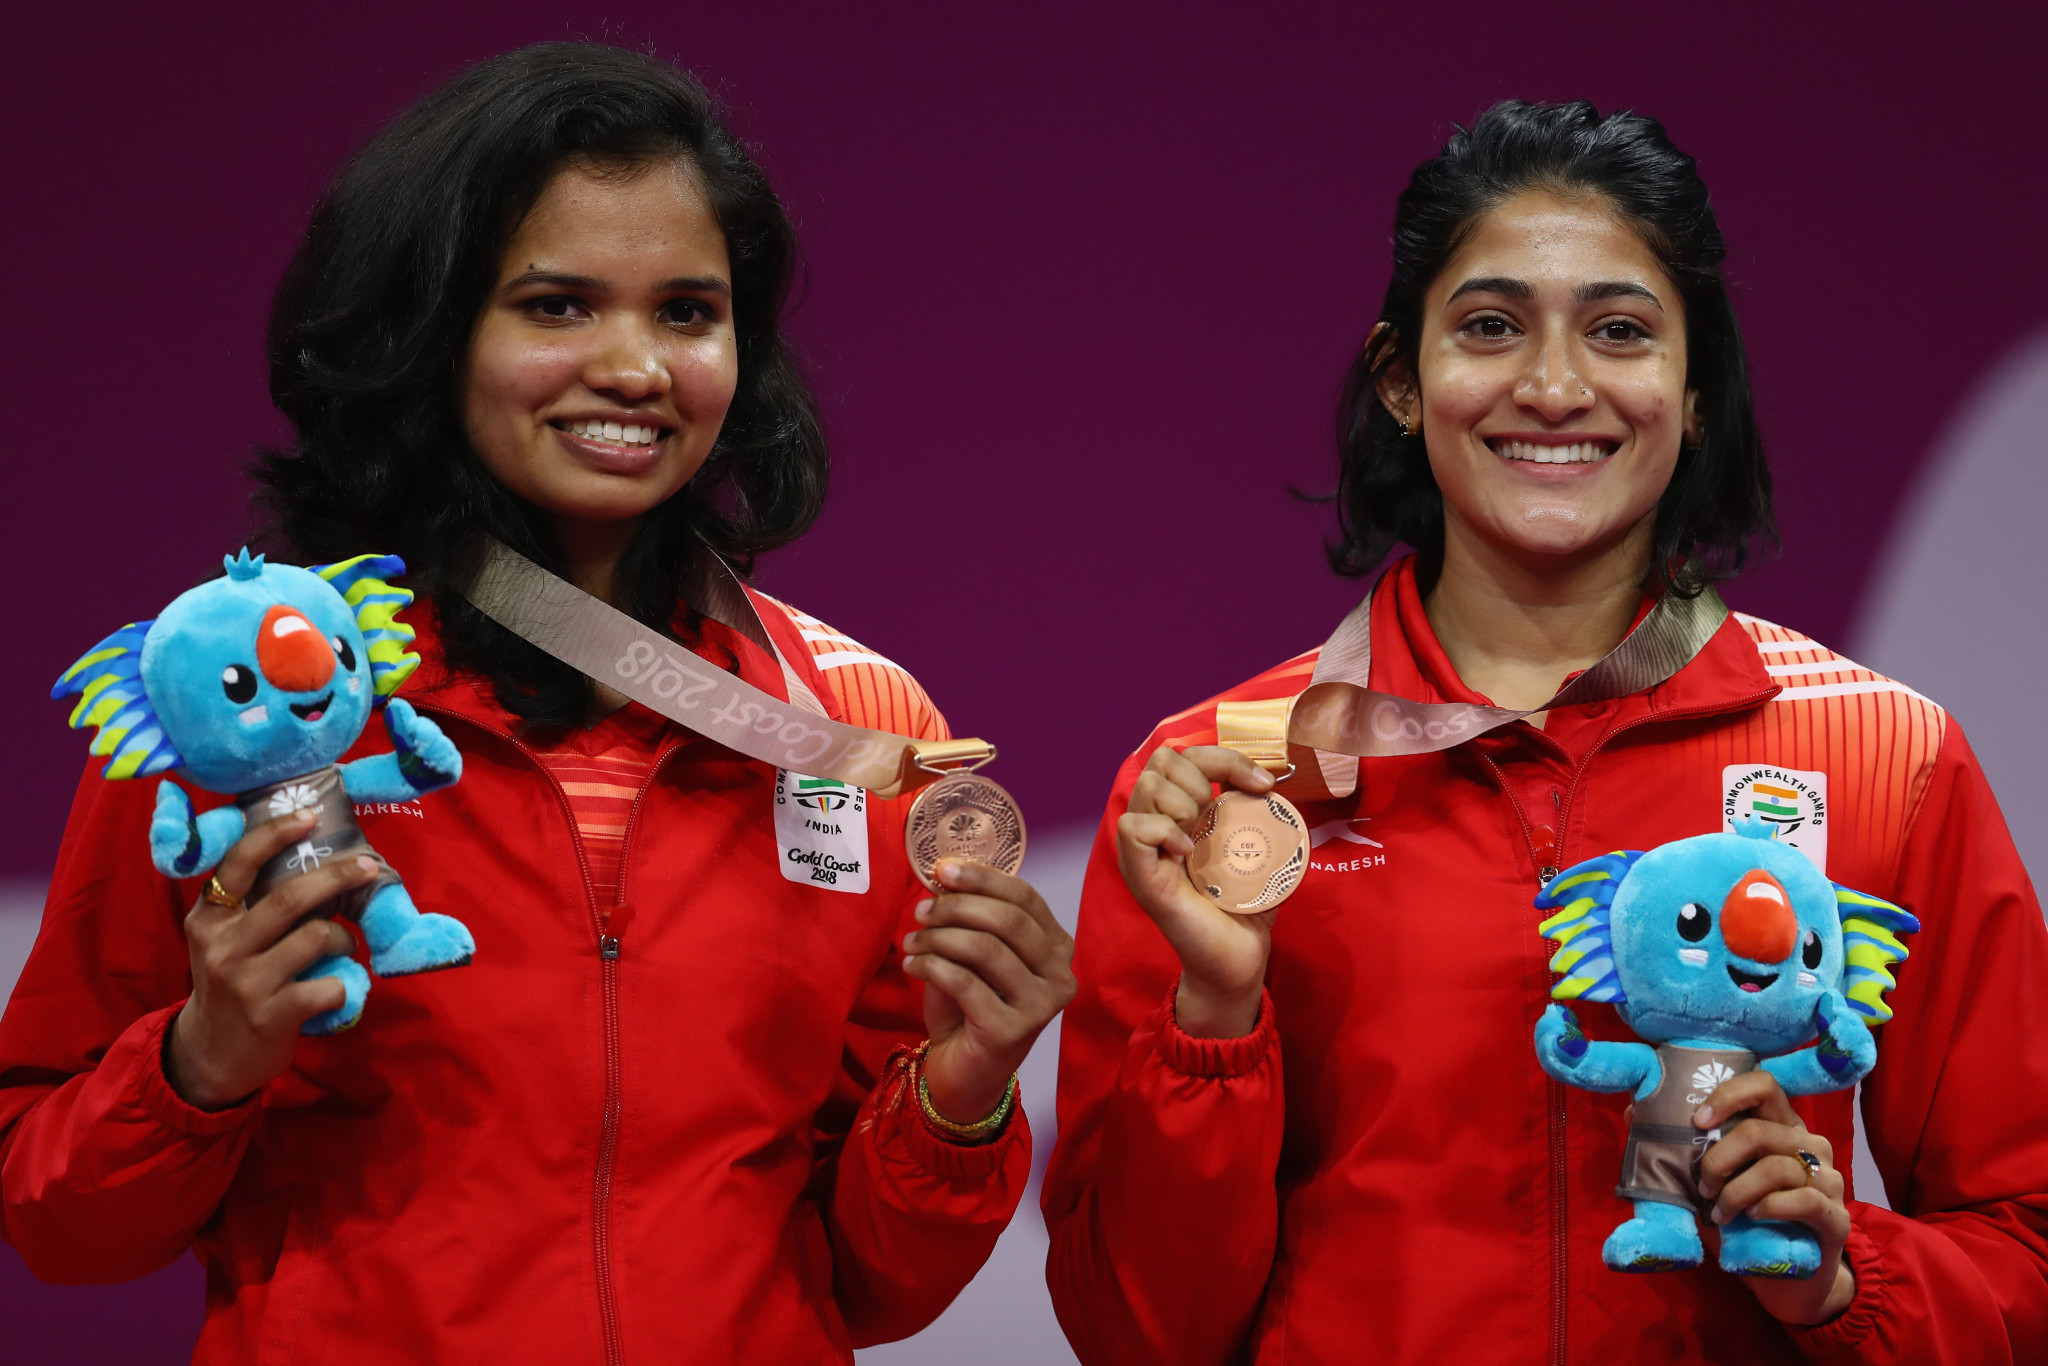 Commonwealth Games badminton champion Reddy tests negative for COVID-19 after initial scare